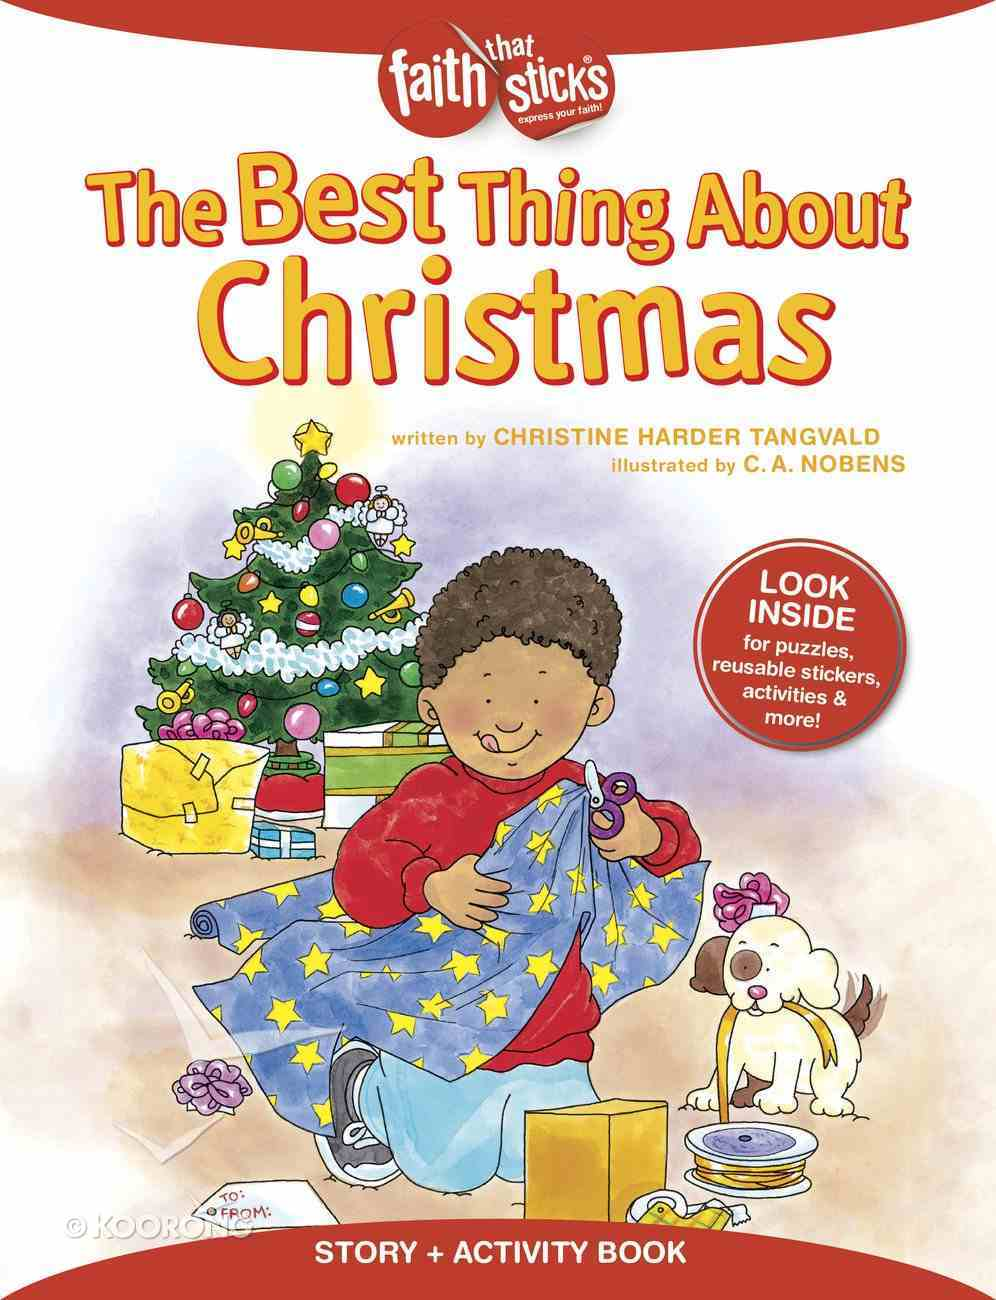 The Best Thing About Christmas (Incl. Stickers & Puzzles) (Faith That Sticks Story & Activity Book Series) Paperback